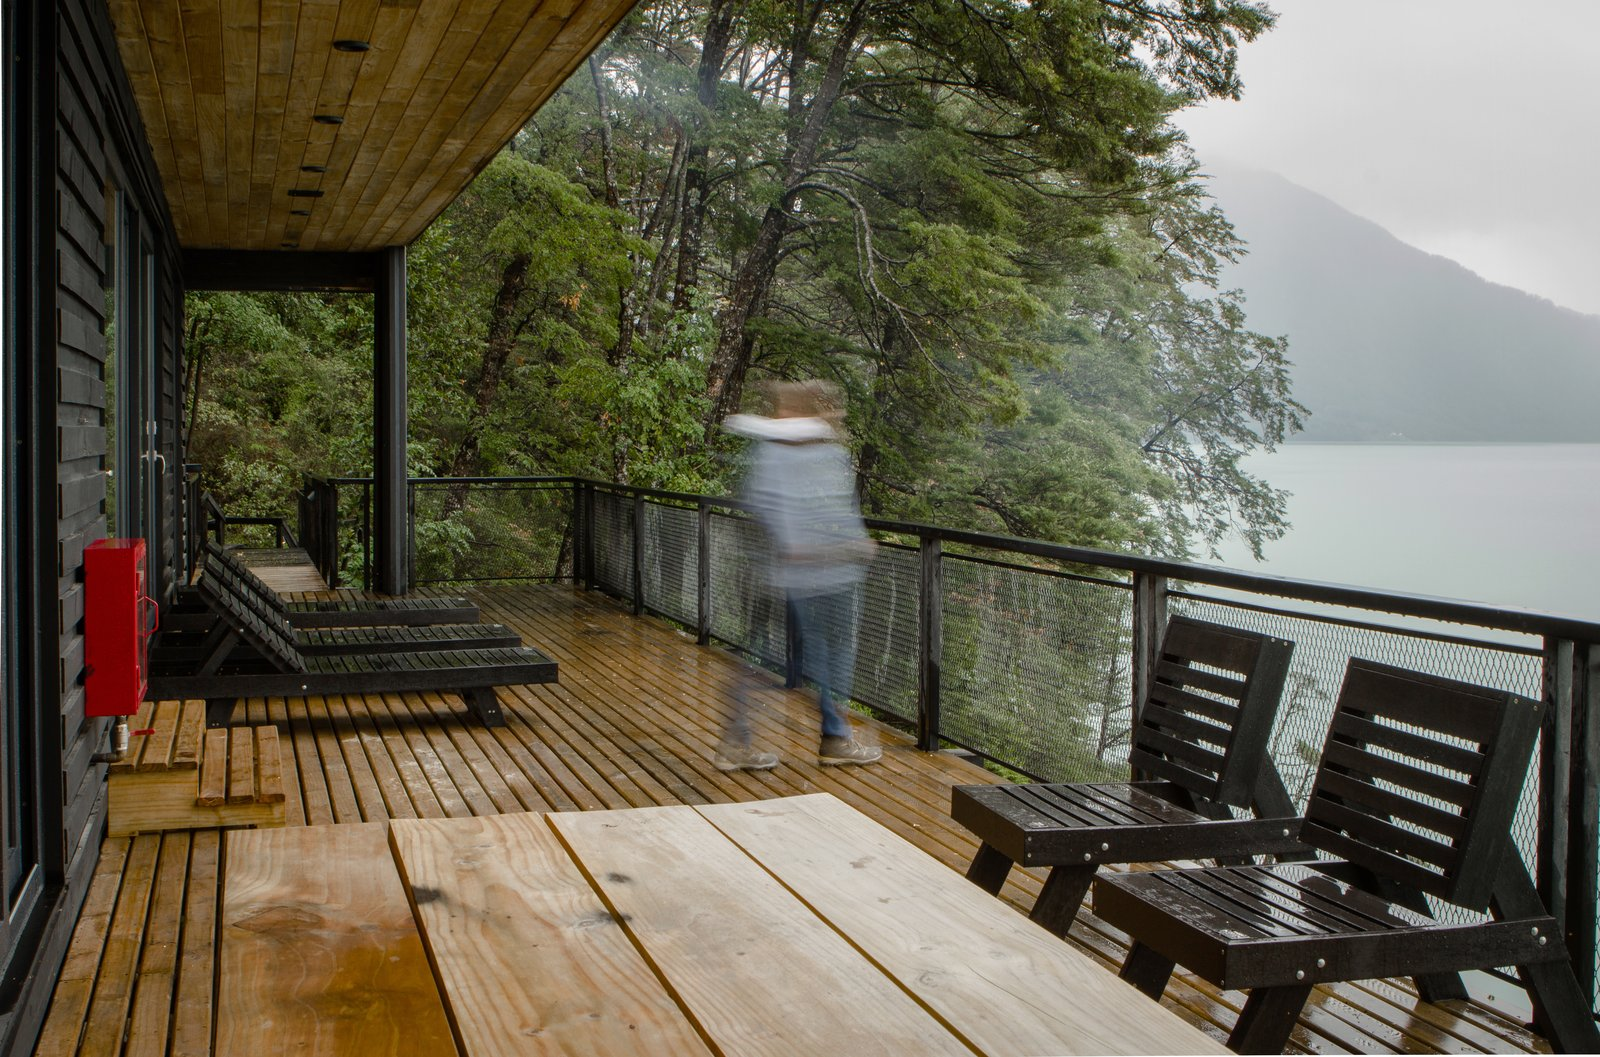 """""""The weather is really good in summer with really hot days, but almost the entire rest of the year is rainy, with wind and clouds,"""" says Chadwick of the national park. """"It's one of those places where you can live through all four seasons in a day.""""  Casa Lago Todos los Santos"""